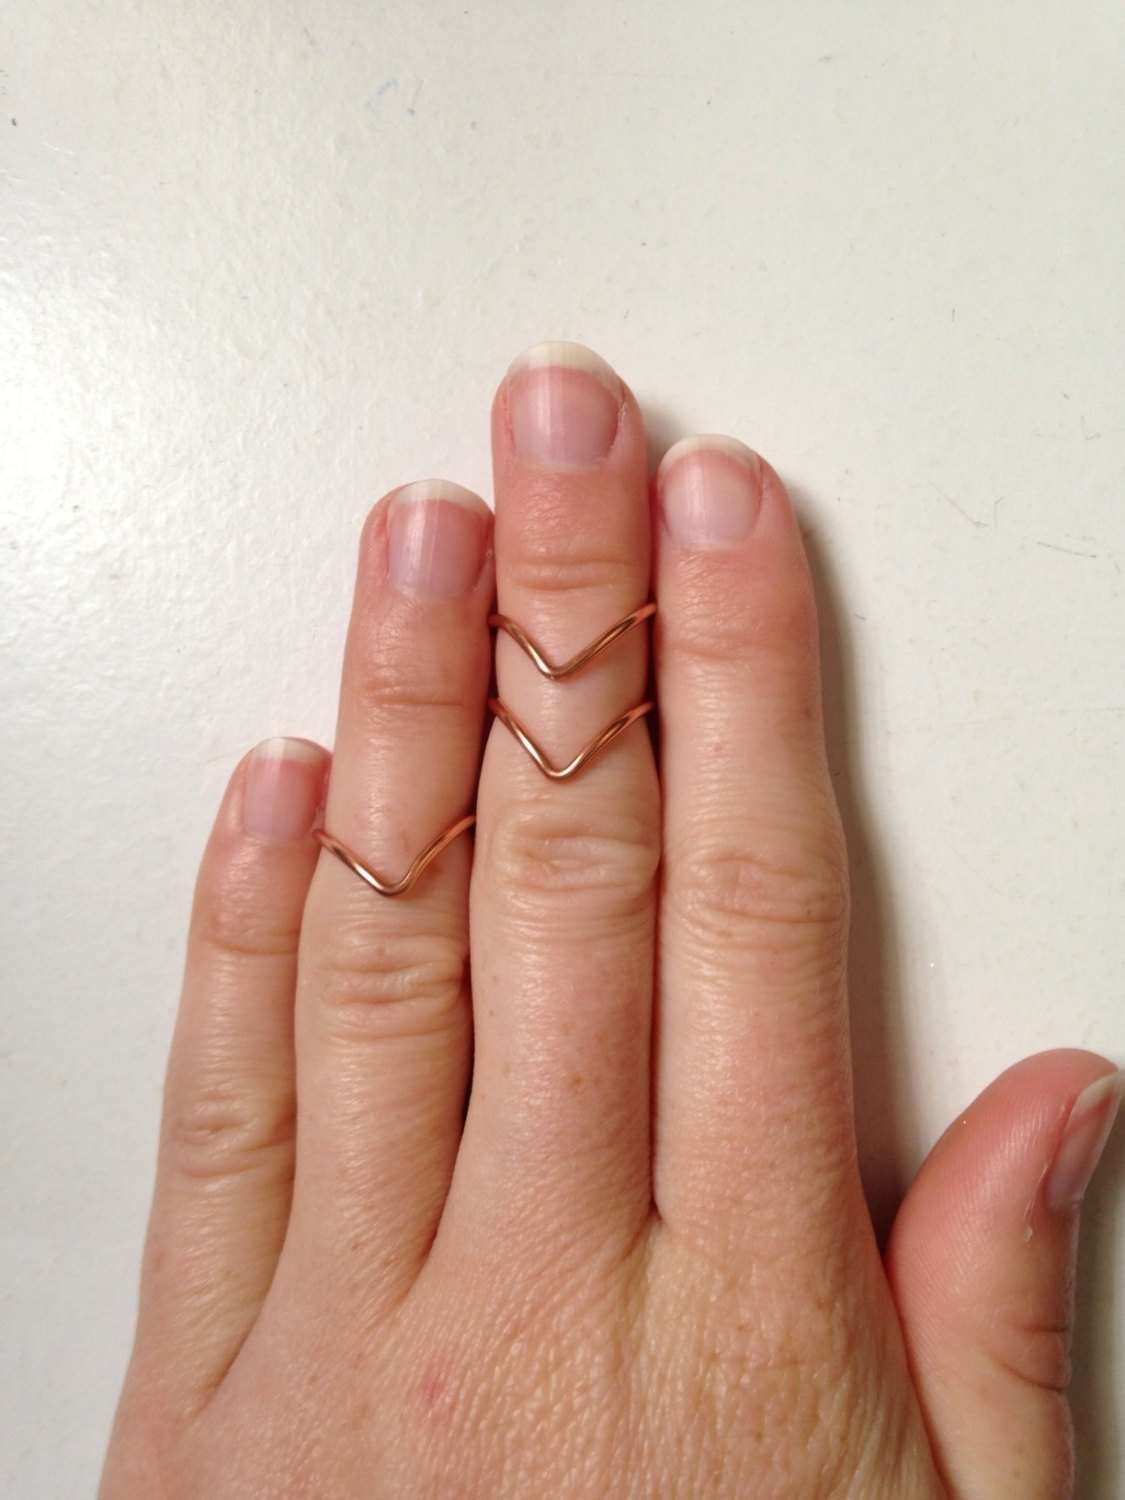 3 Stackable Chevron Mid Finger Rings In Rose Gold Rings Regarding Recent Chevron Finger Rings (Gallery 15 of 15)